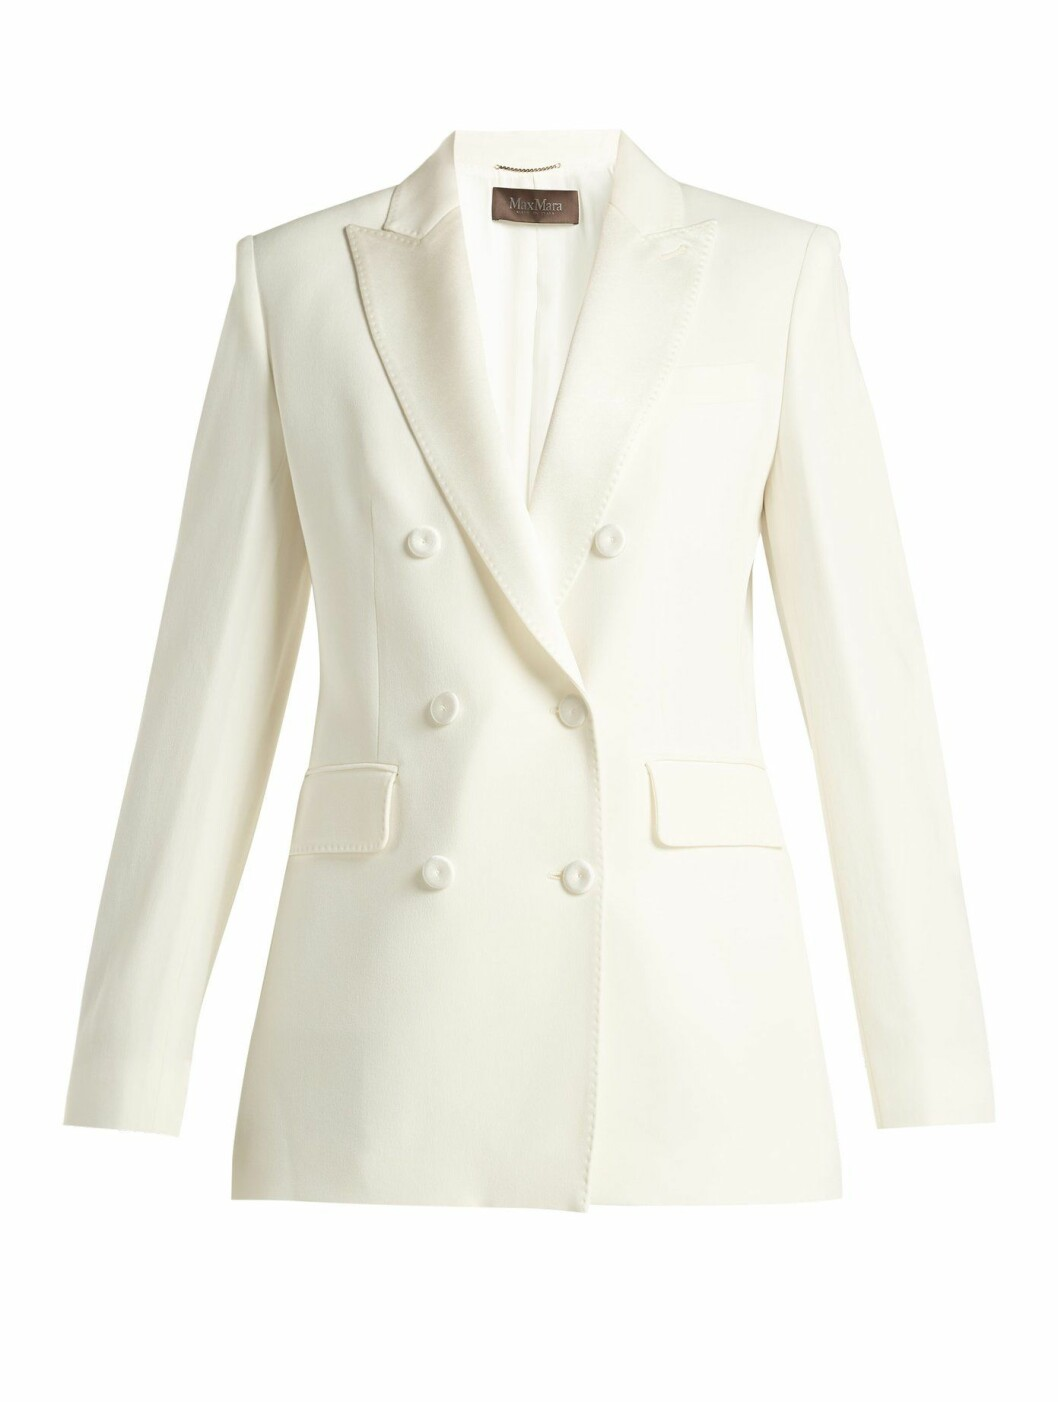 <strong>Blazer fra Max Mara |5580,-| https:</strong>//www.matchesfashion.com/intl/products/1211719